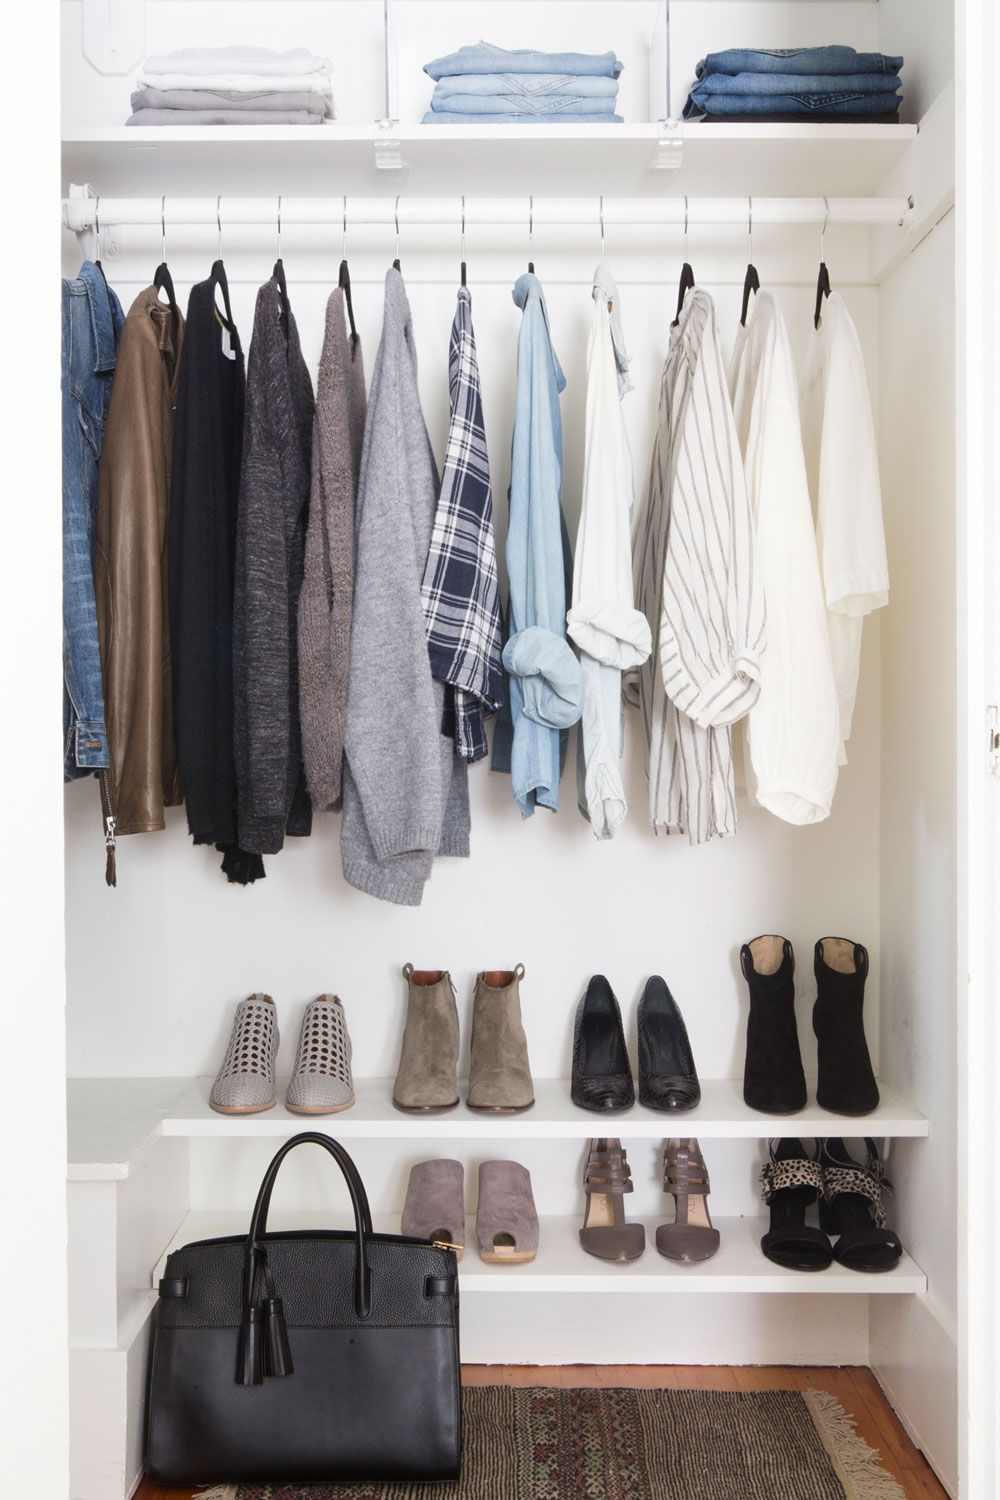 Incroyable Open Closet In Neutrals + Blue #home 5 Simple Steps To A Streamlined +  Stylish Closet | Rue